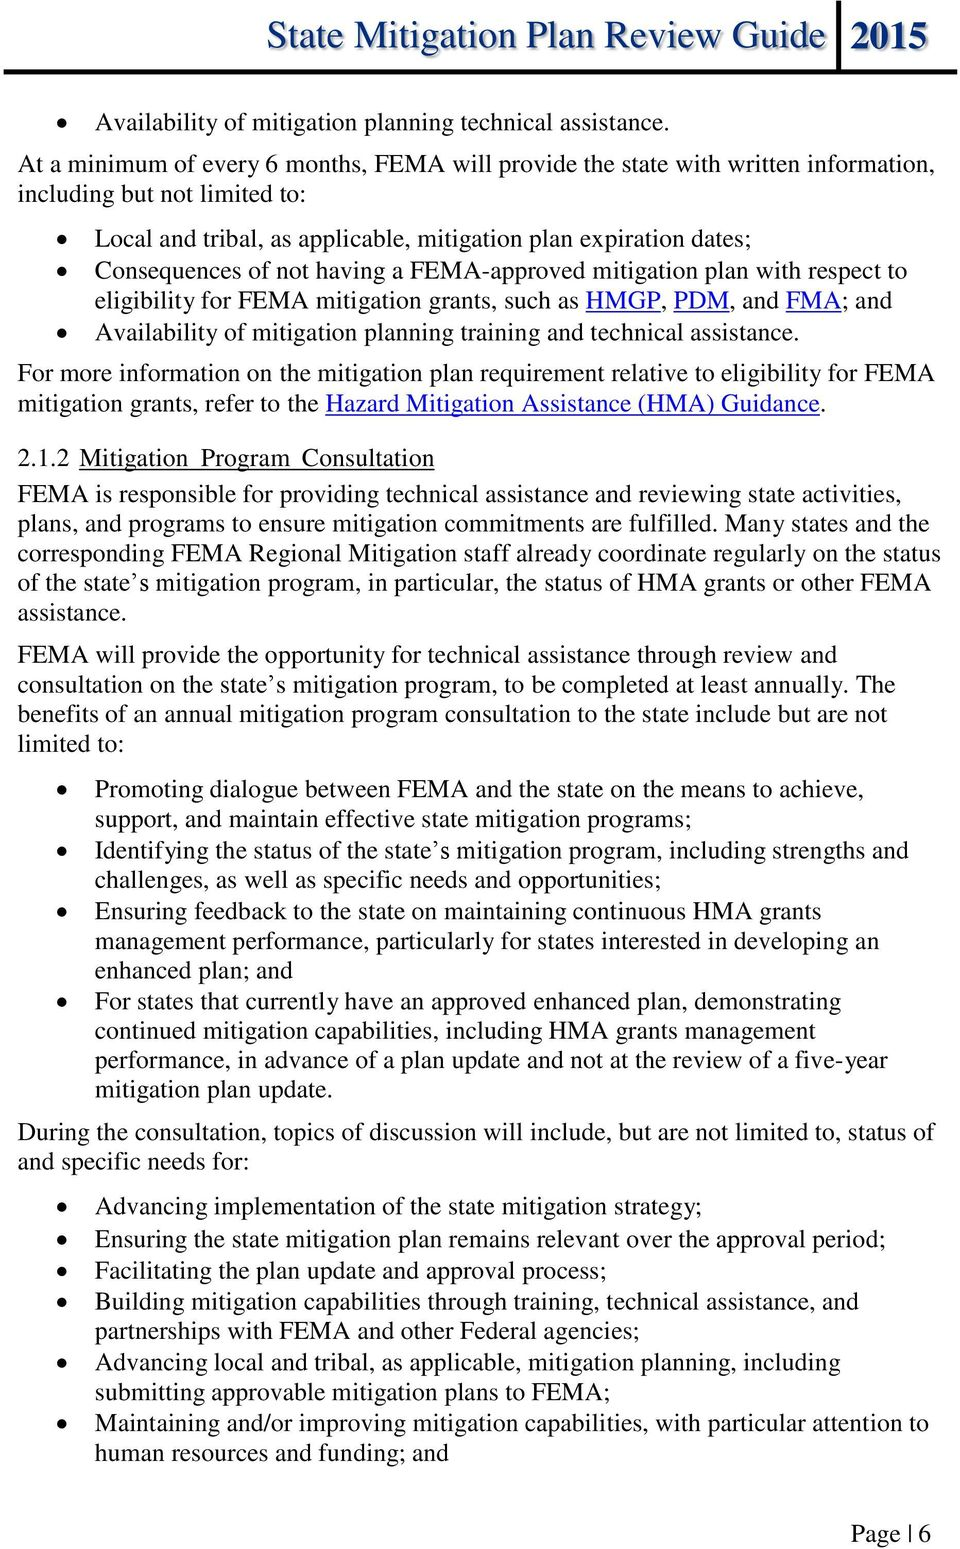 not having a FEMA-approved mitigation plan with respect to eligibility for FEMA mitigation grants, such as HMGP, PDM, and FMA; and Availability of mitigation planning training and technical